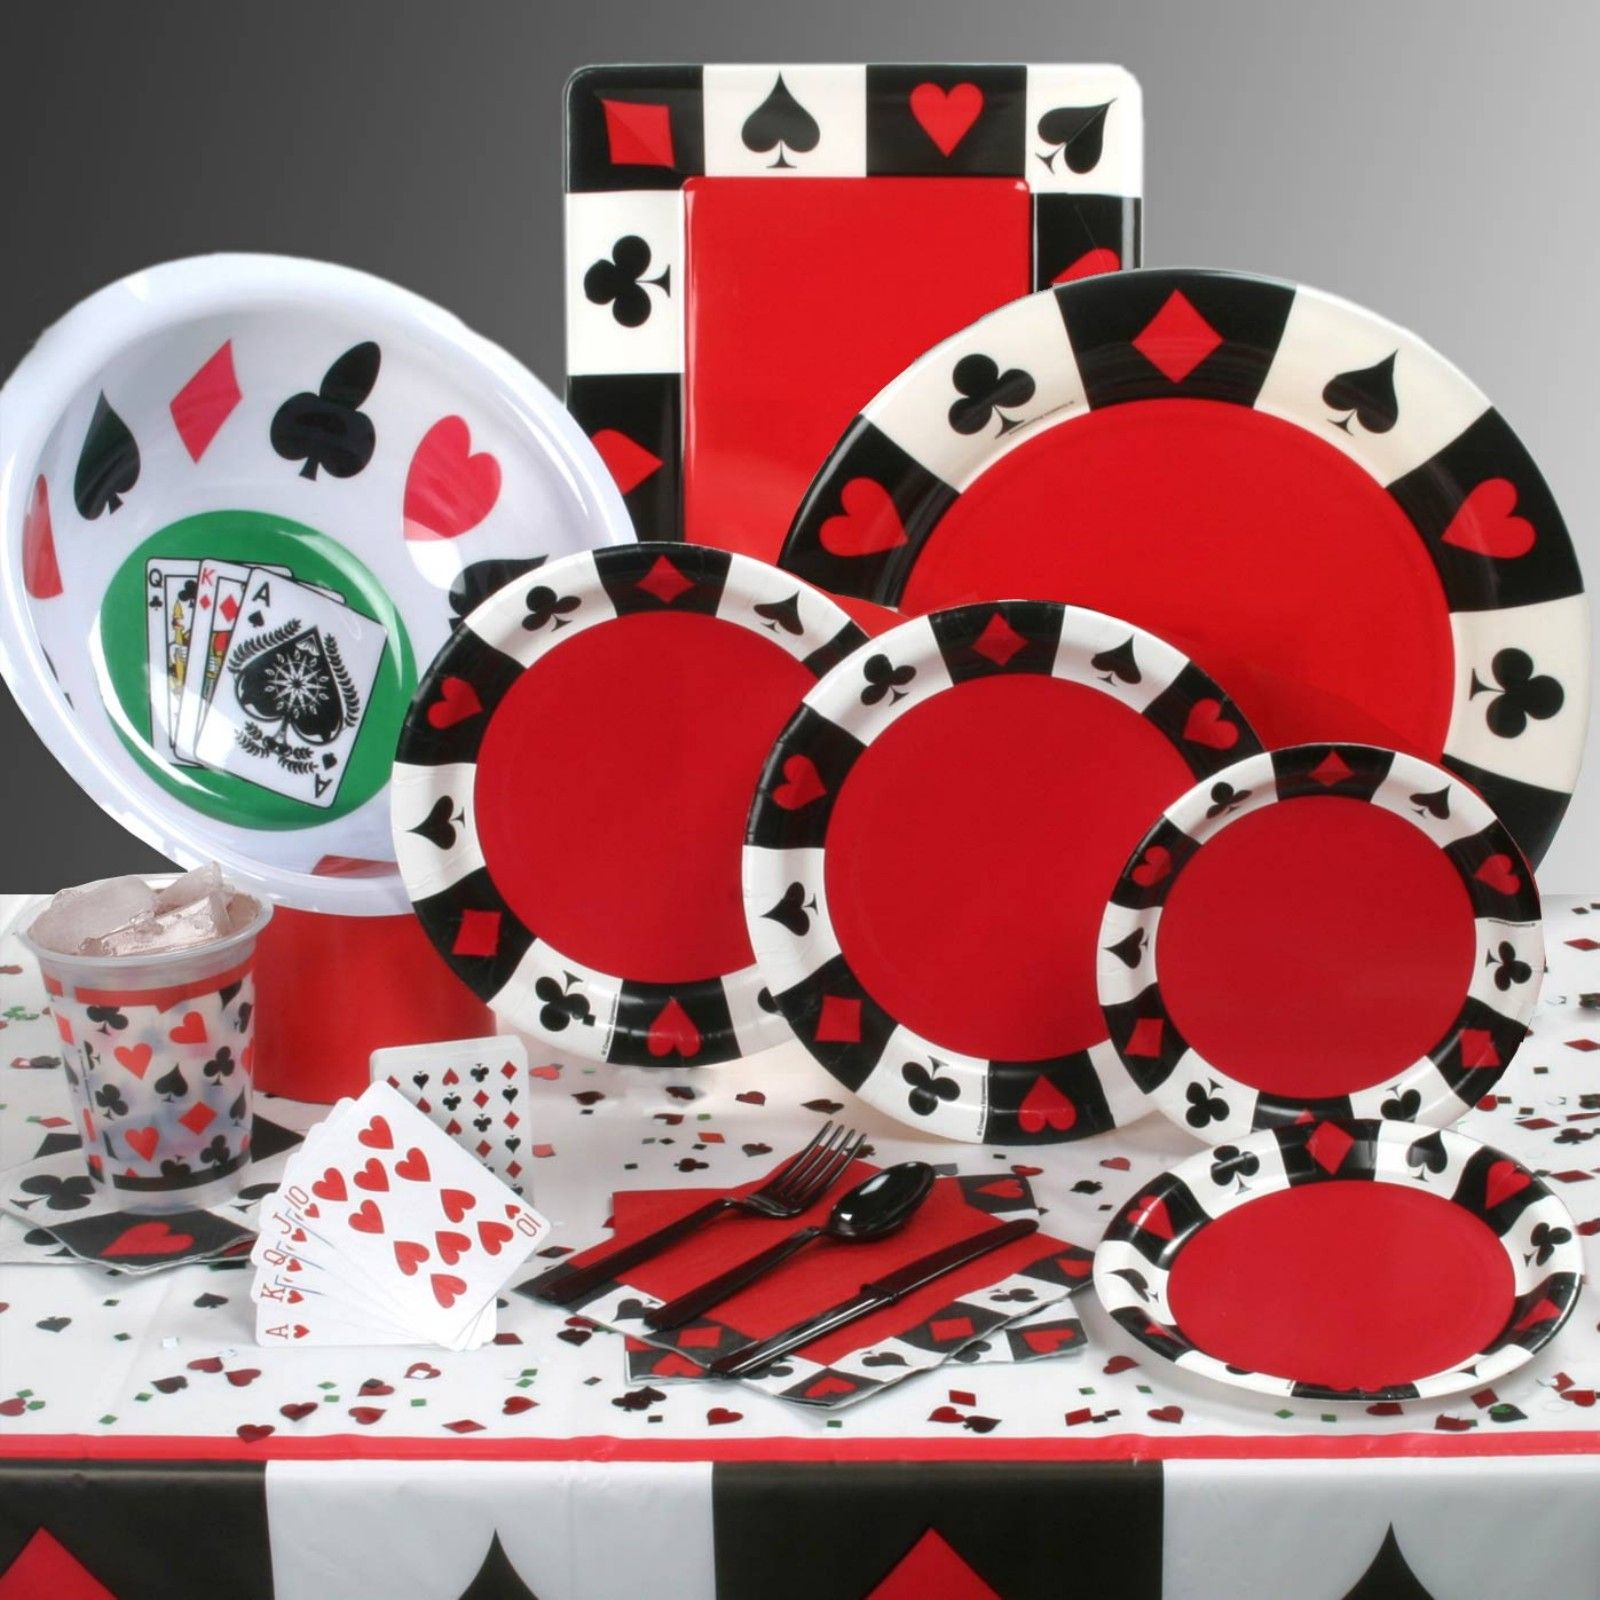 Party favors casino casino gambling gambling game online riverboat